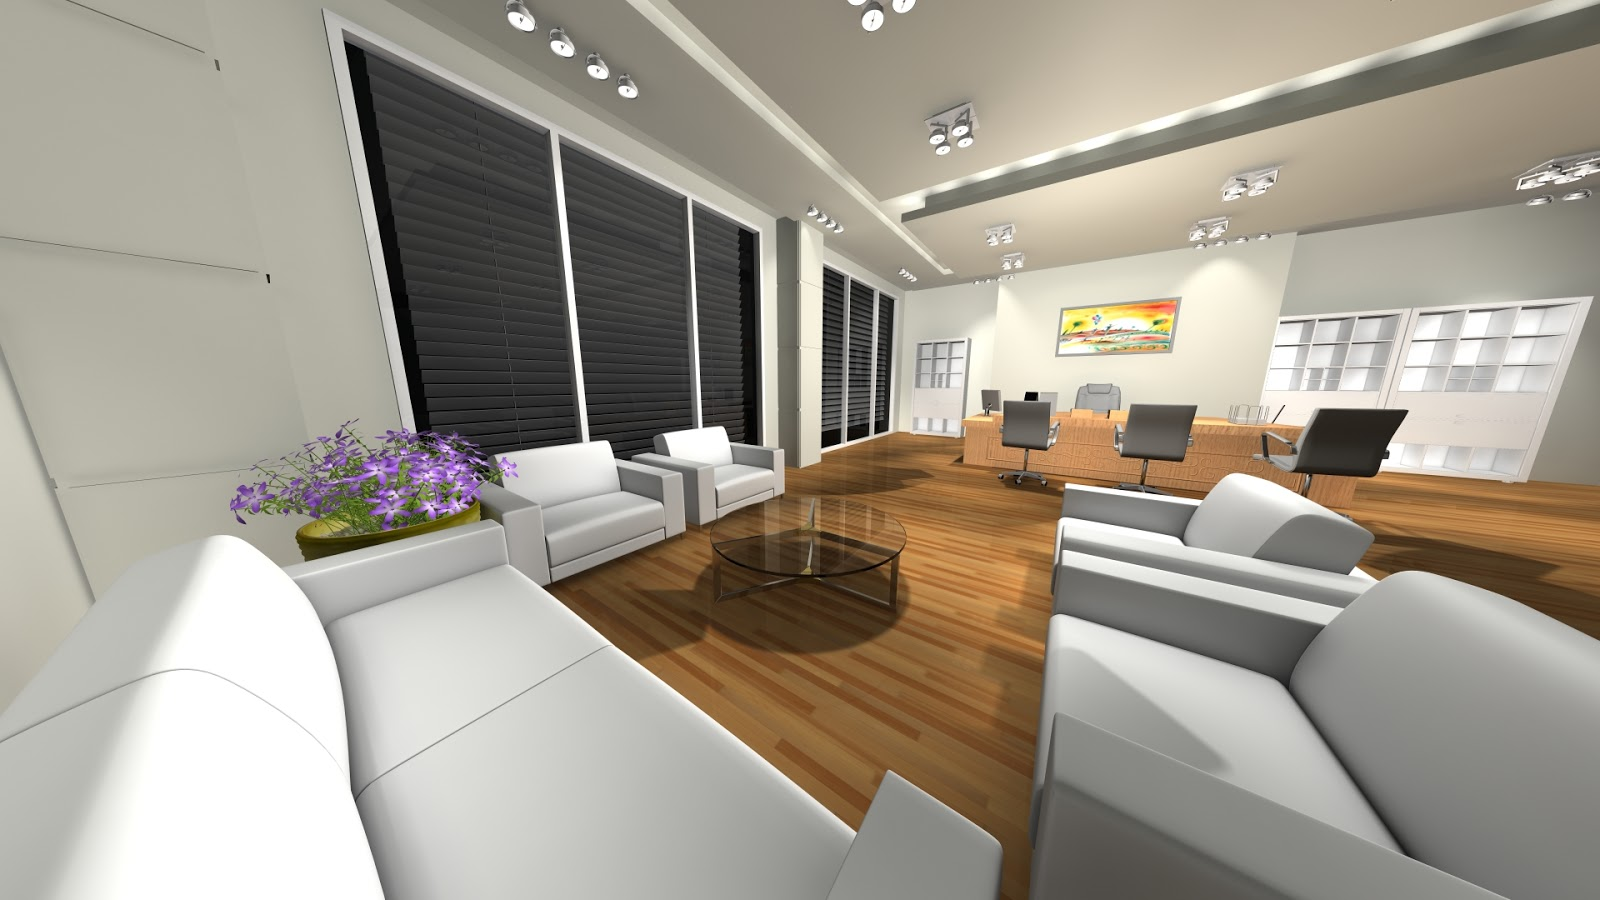 Sajid designer office room 3d interior design 3ds max 3d interior design